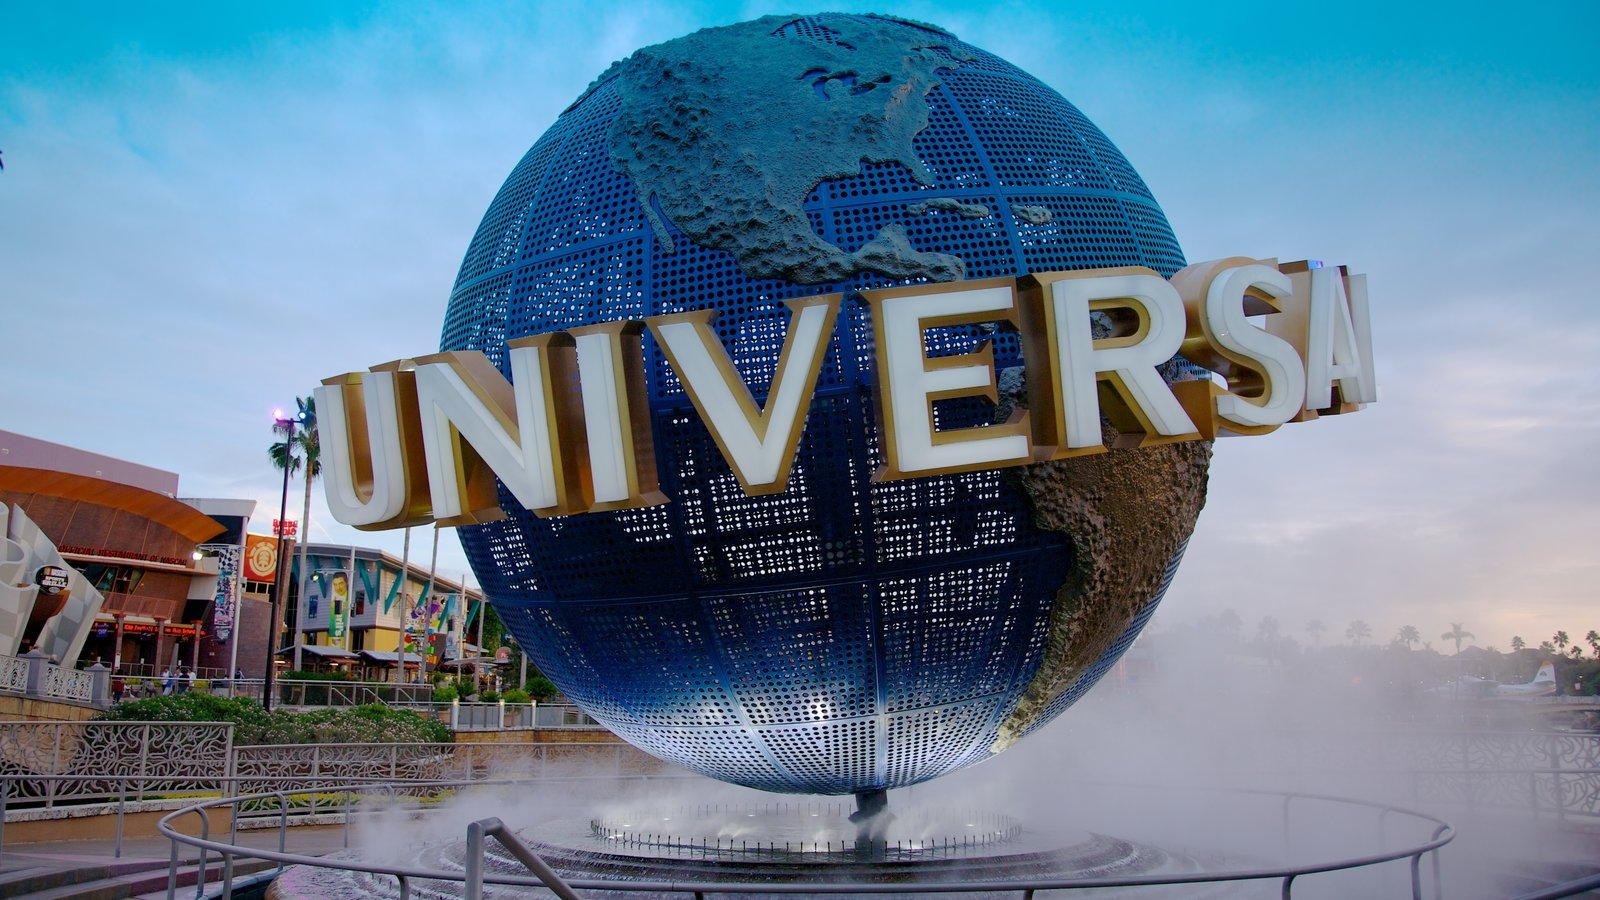 Universal Studios Orlando which includes signage and rides